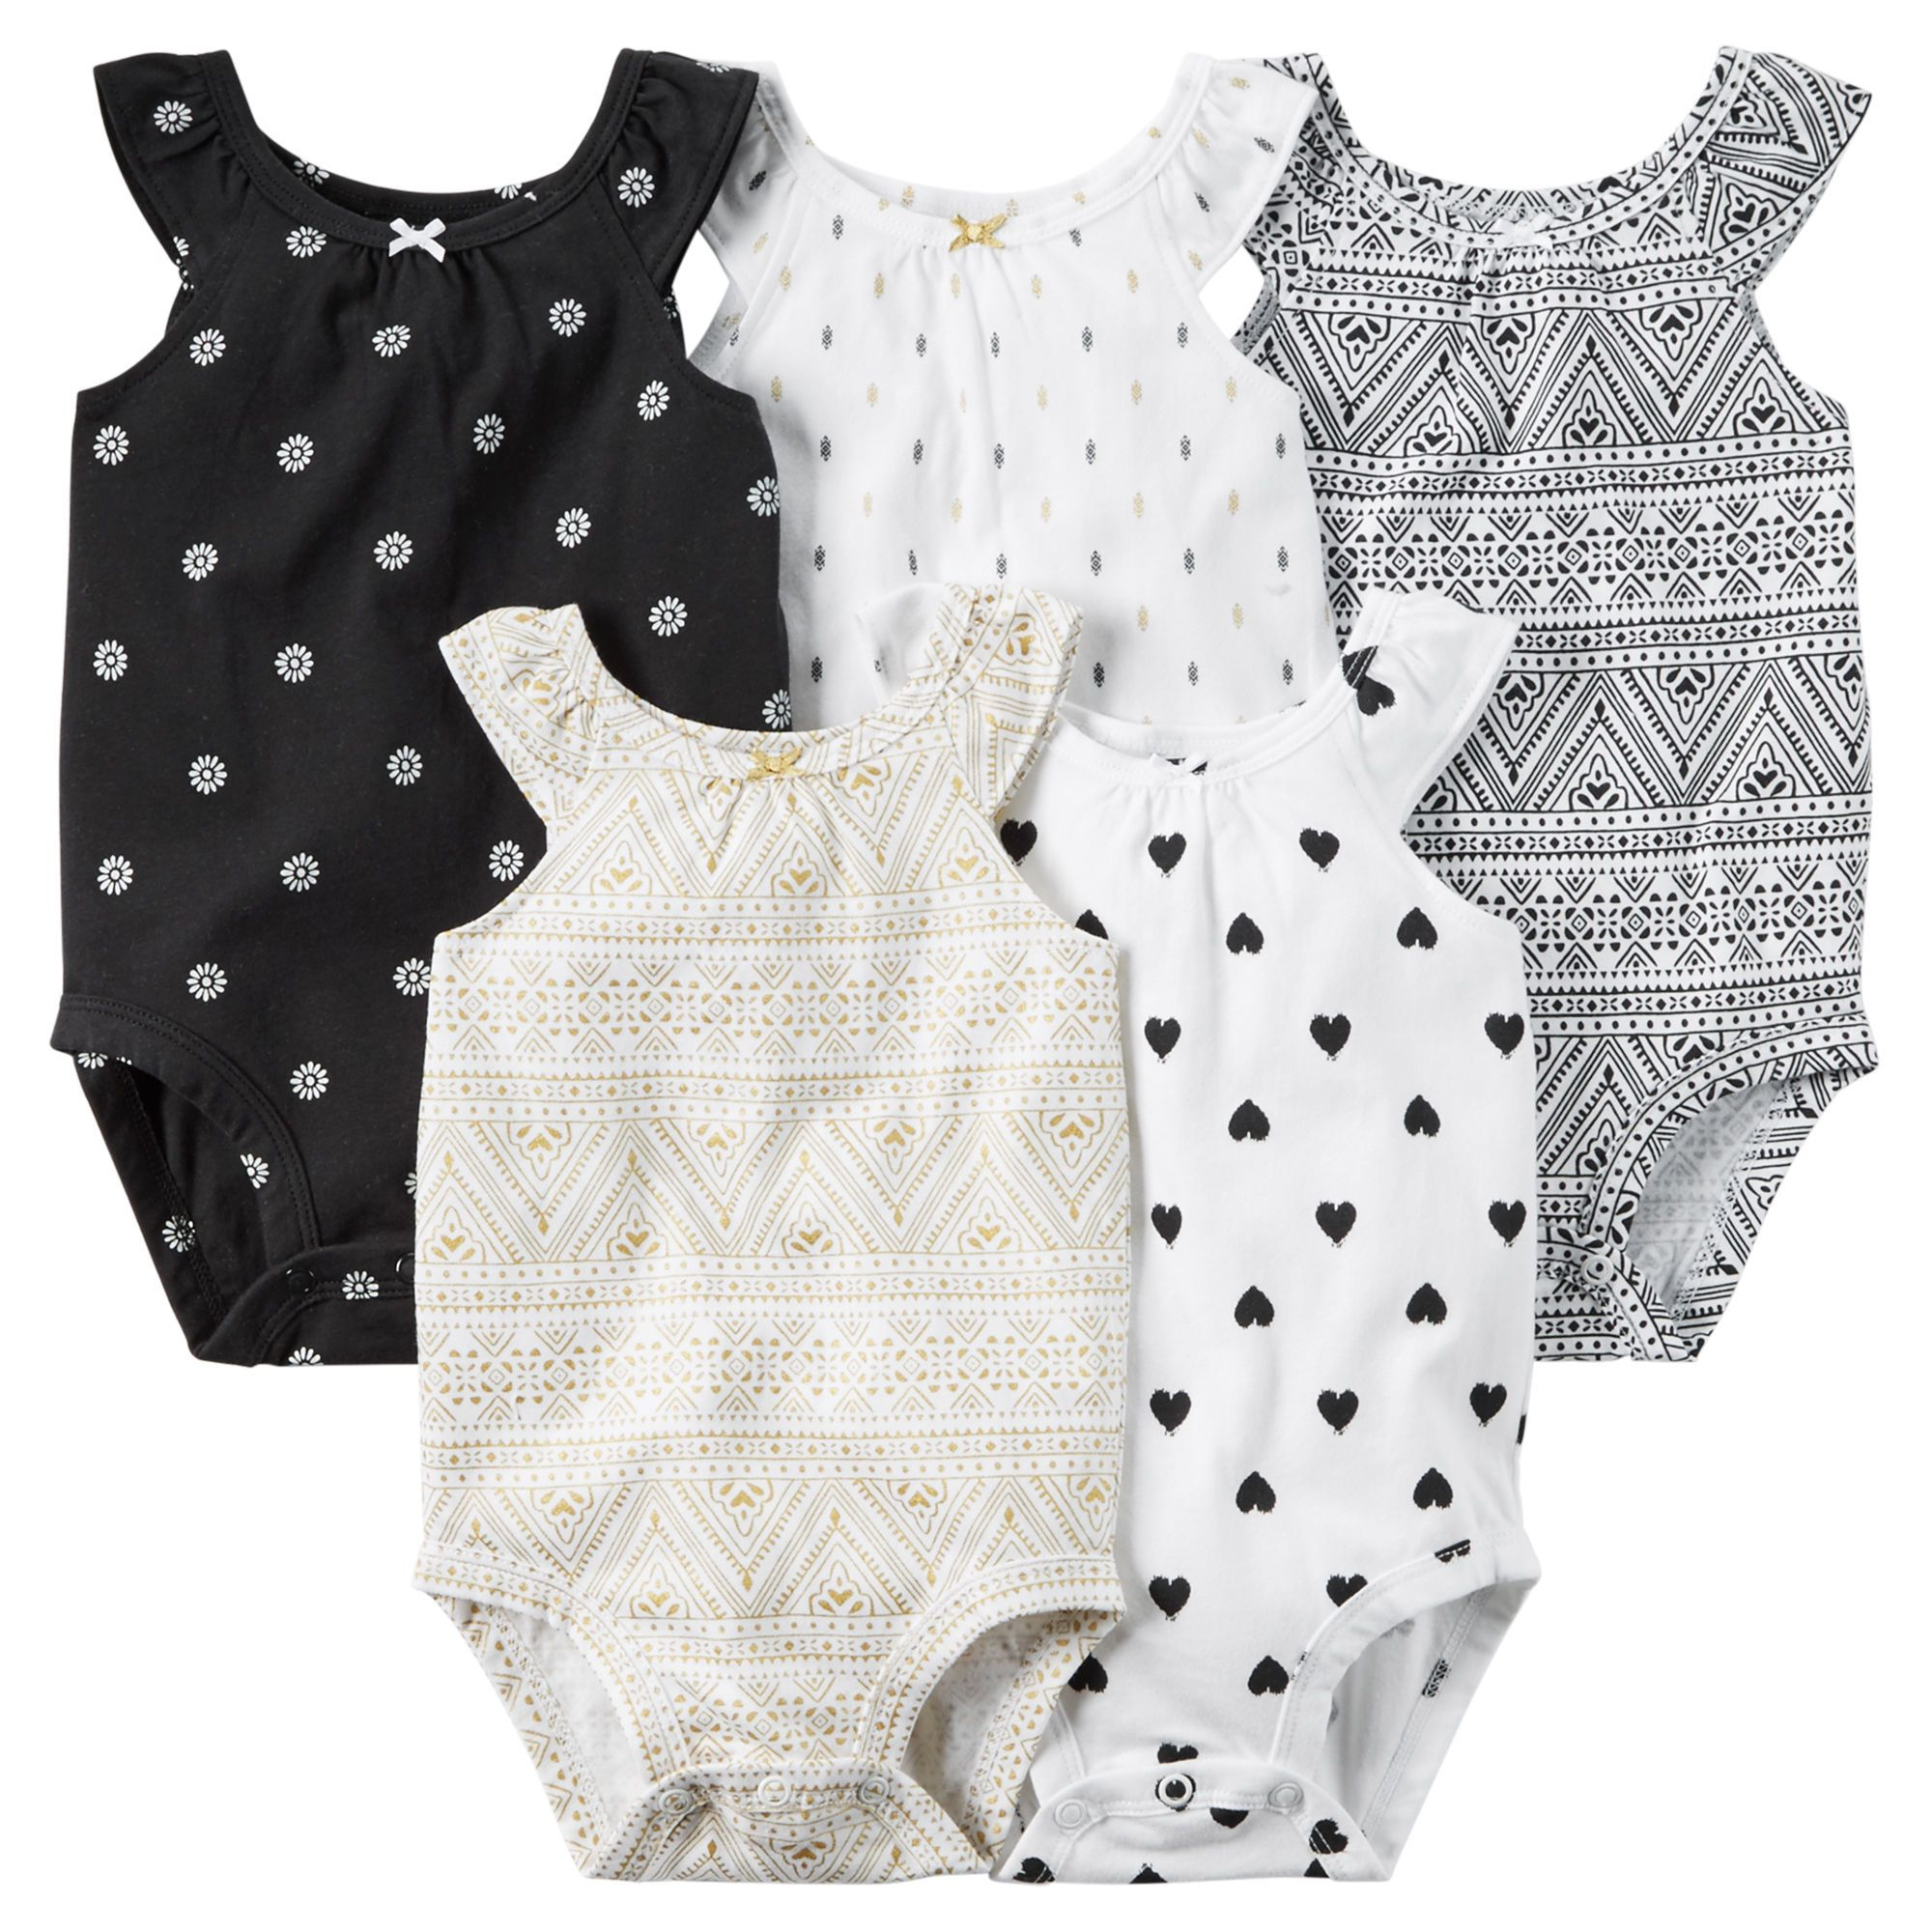 5 Pack Sleeveless Bodysuits